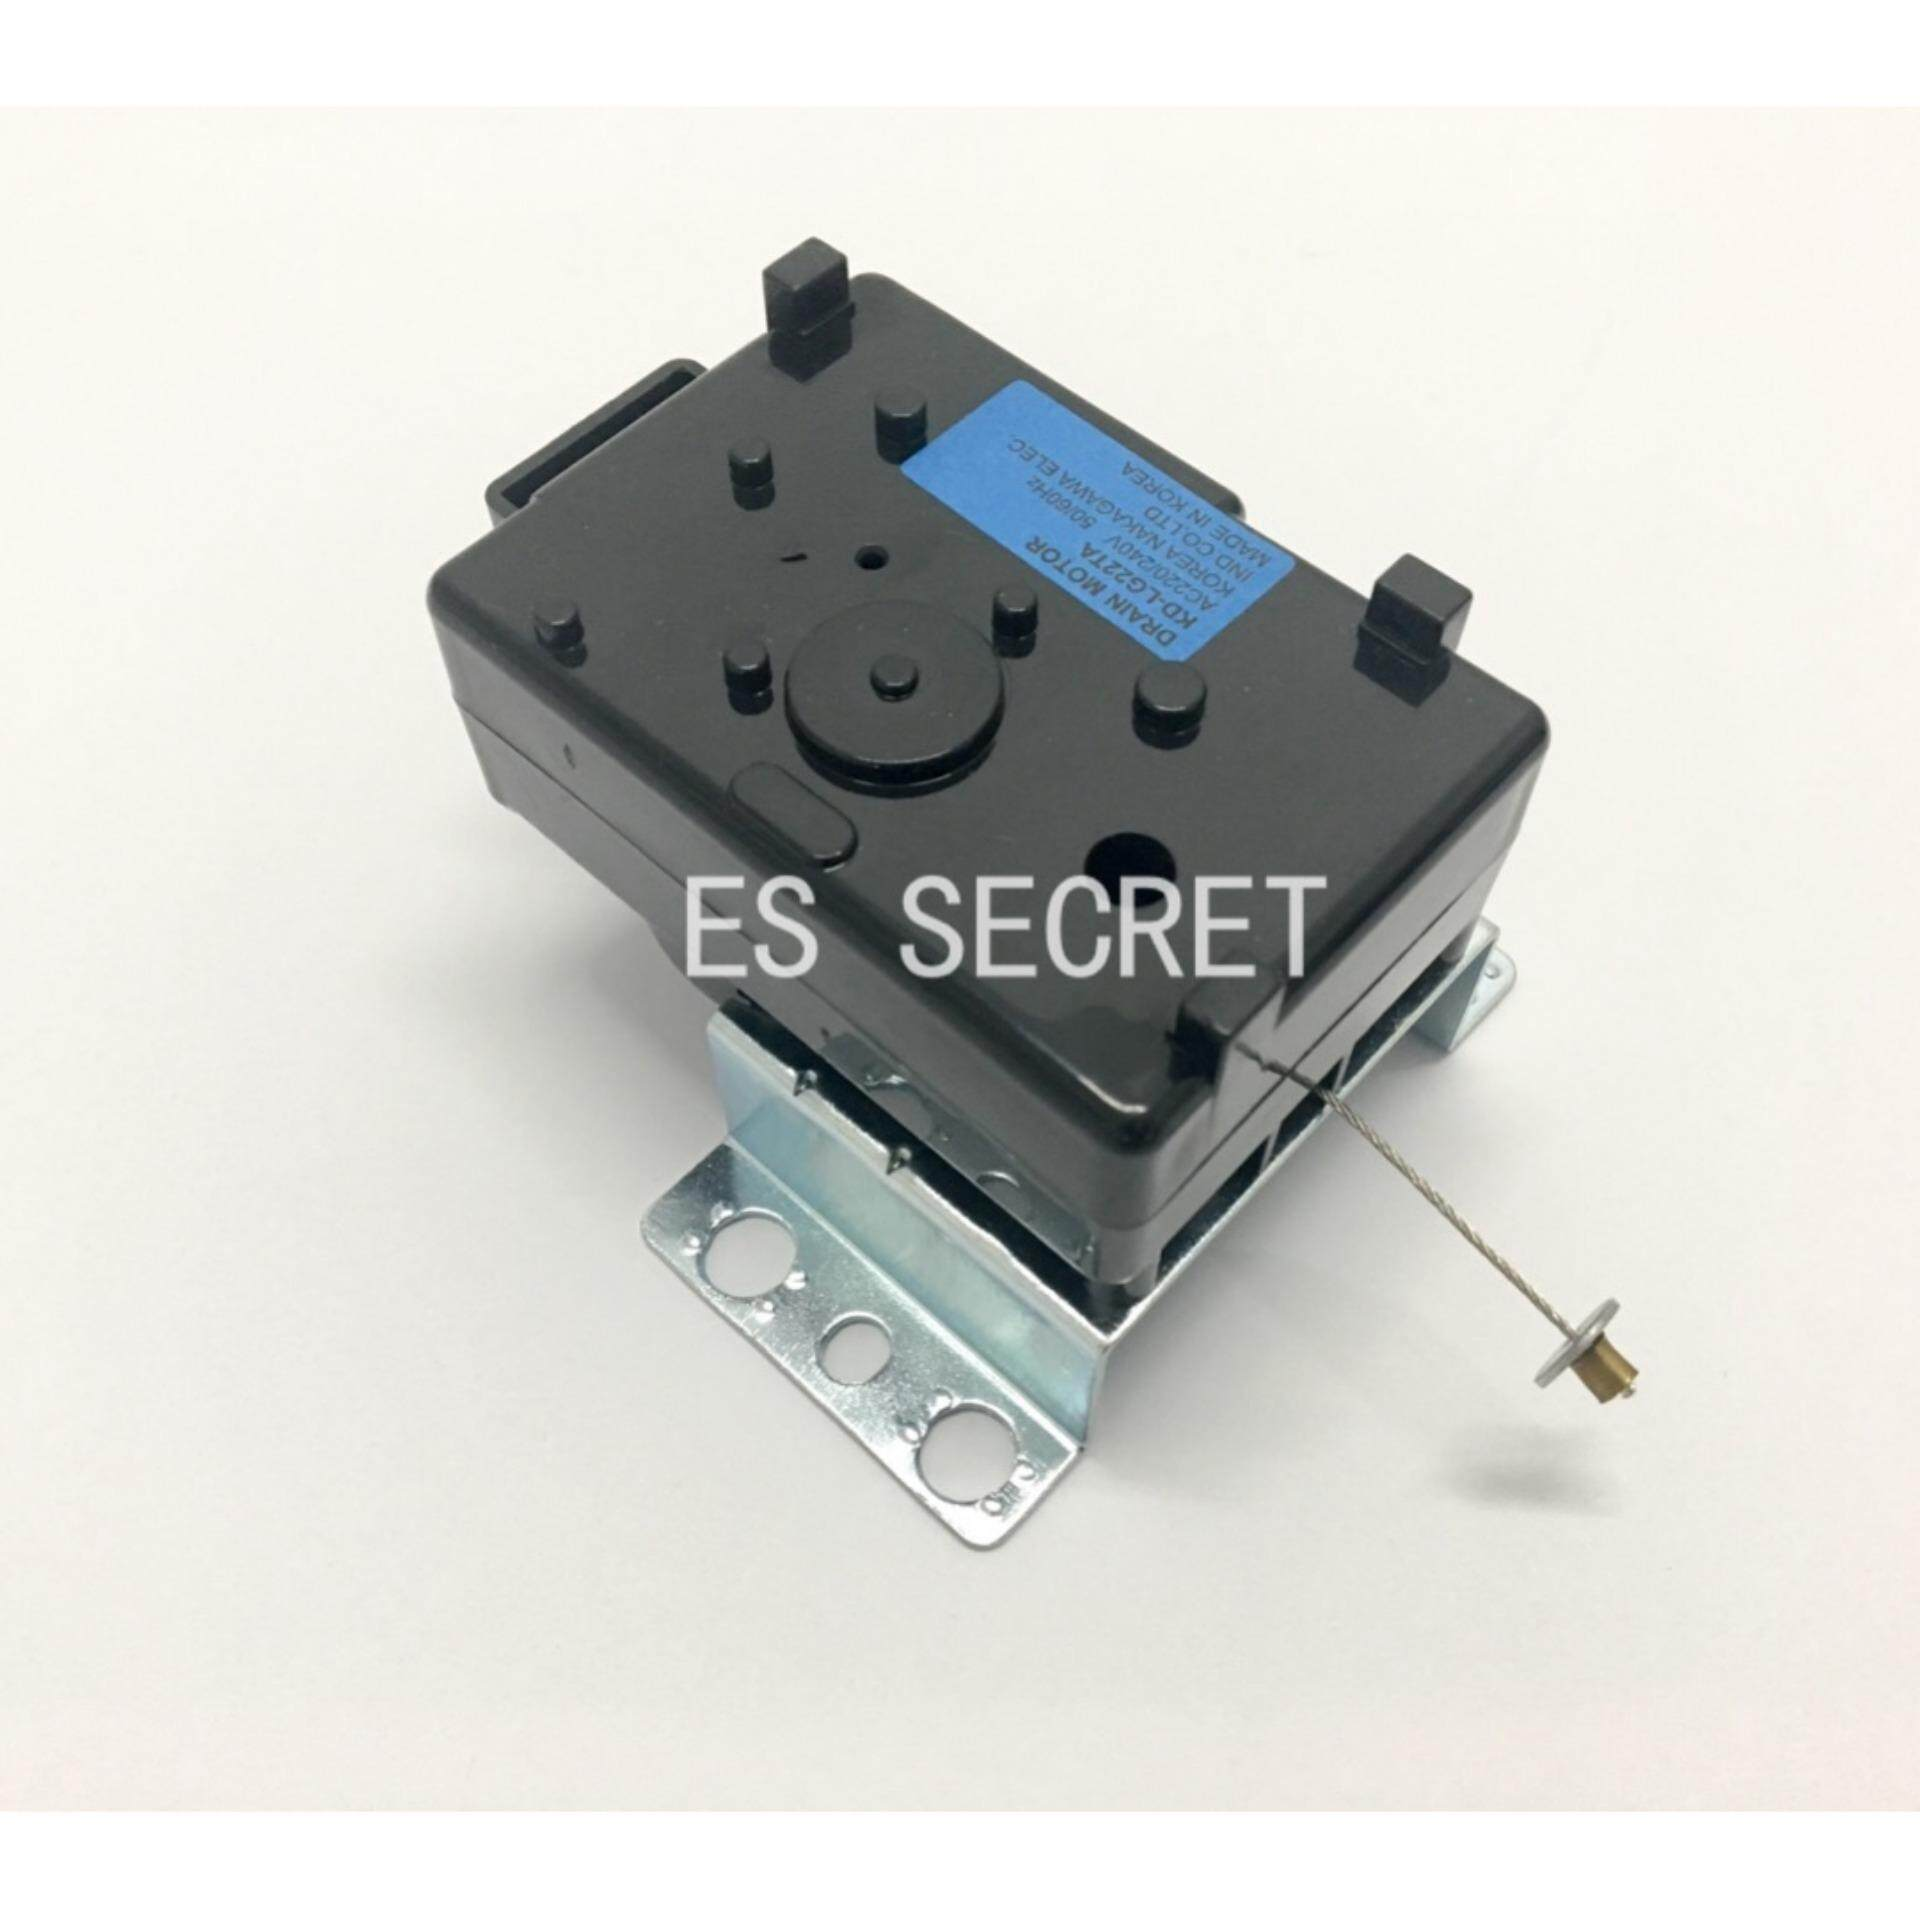 LG / SAMSUNG WASHING MACHINE DRAIN MOTOR